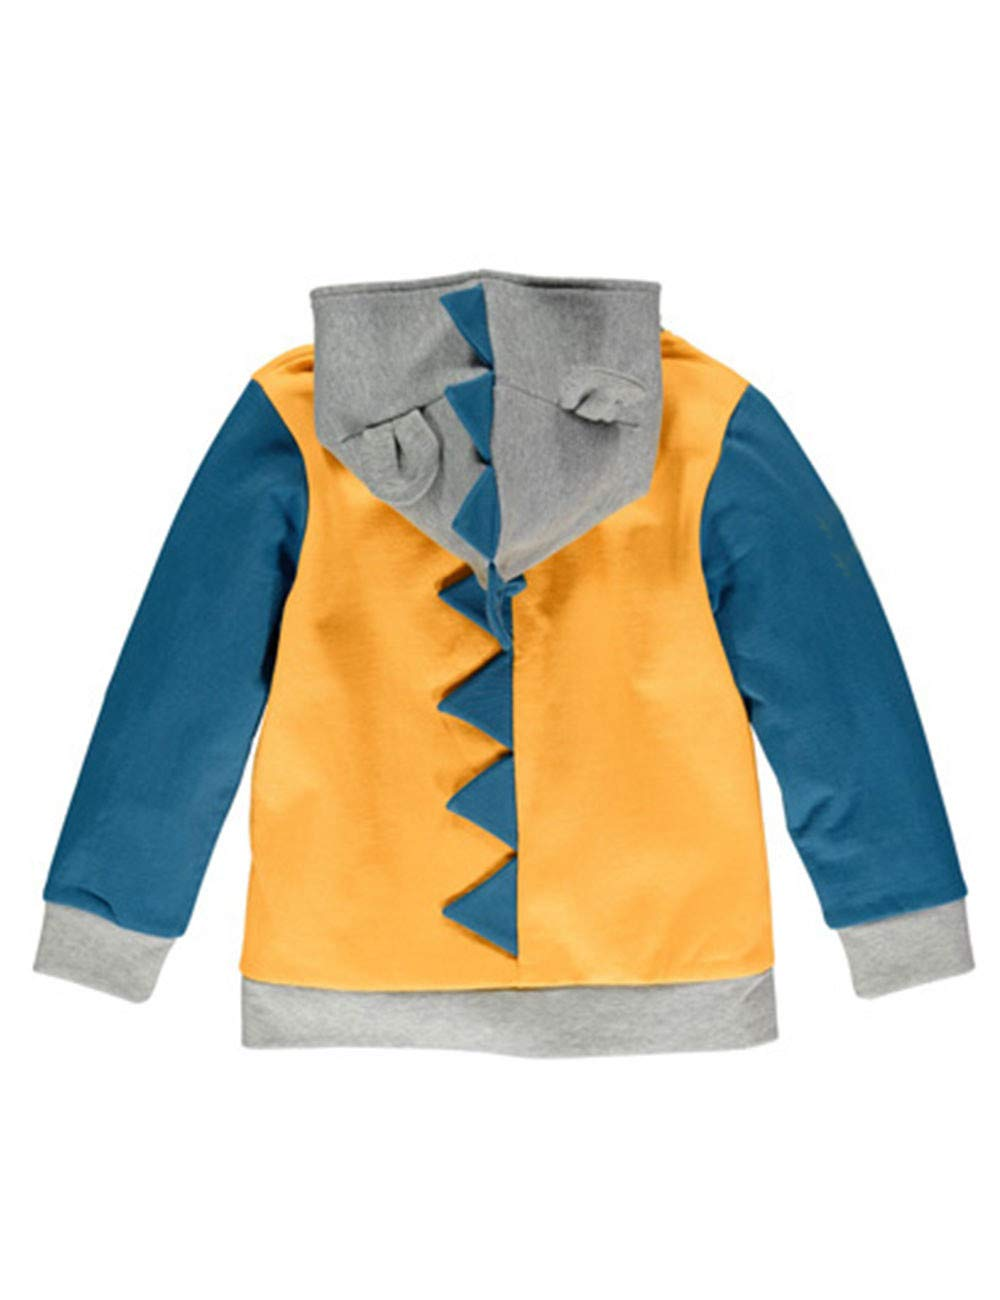 LitBud Boys Jacket for Kids Toddler Cartoon Dinosaur Jurassic World Zipper Packaway Spring Animal Hoodies Coat Size 4-5 Years 5T Halloween Yellow